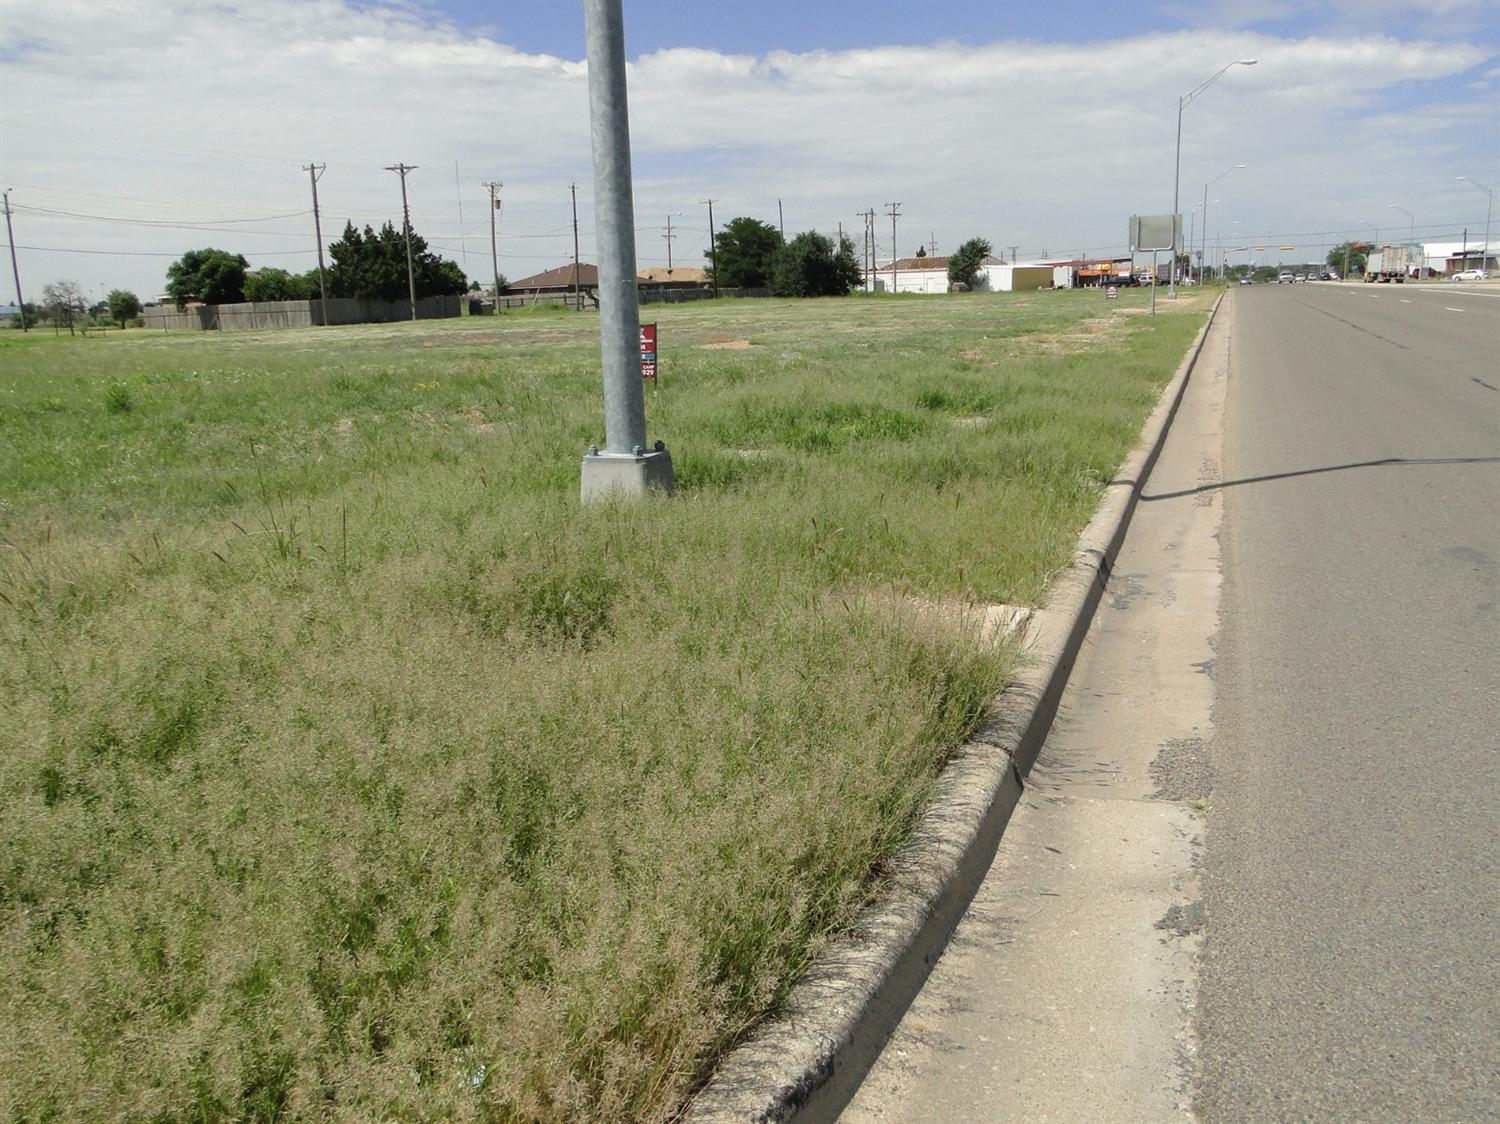 Lot is approximately 50x160. This lot can be combined with the adjacent two lots to the west for a large area of approximately .5 ac or approximately 23,550 Sq. Ft. Could be rezoned for residential use.